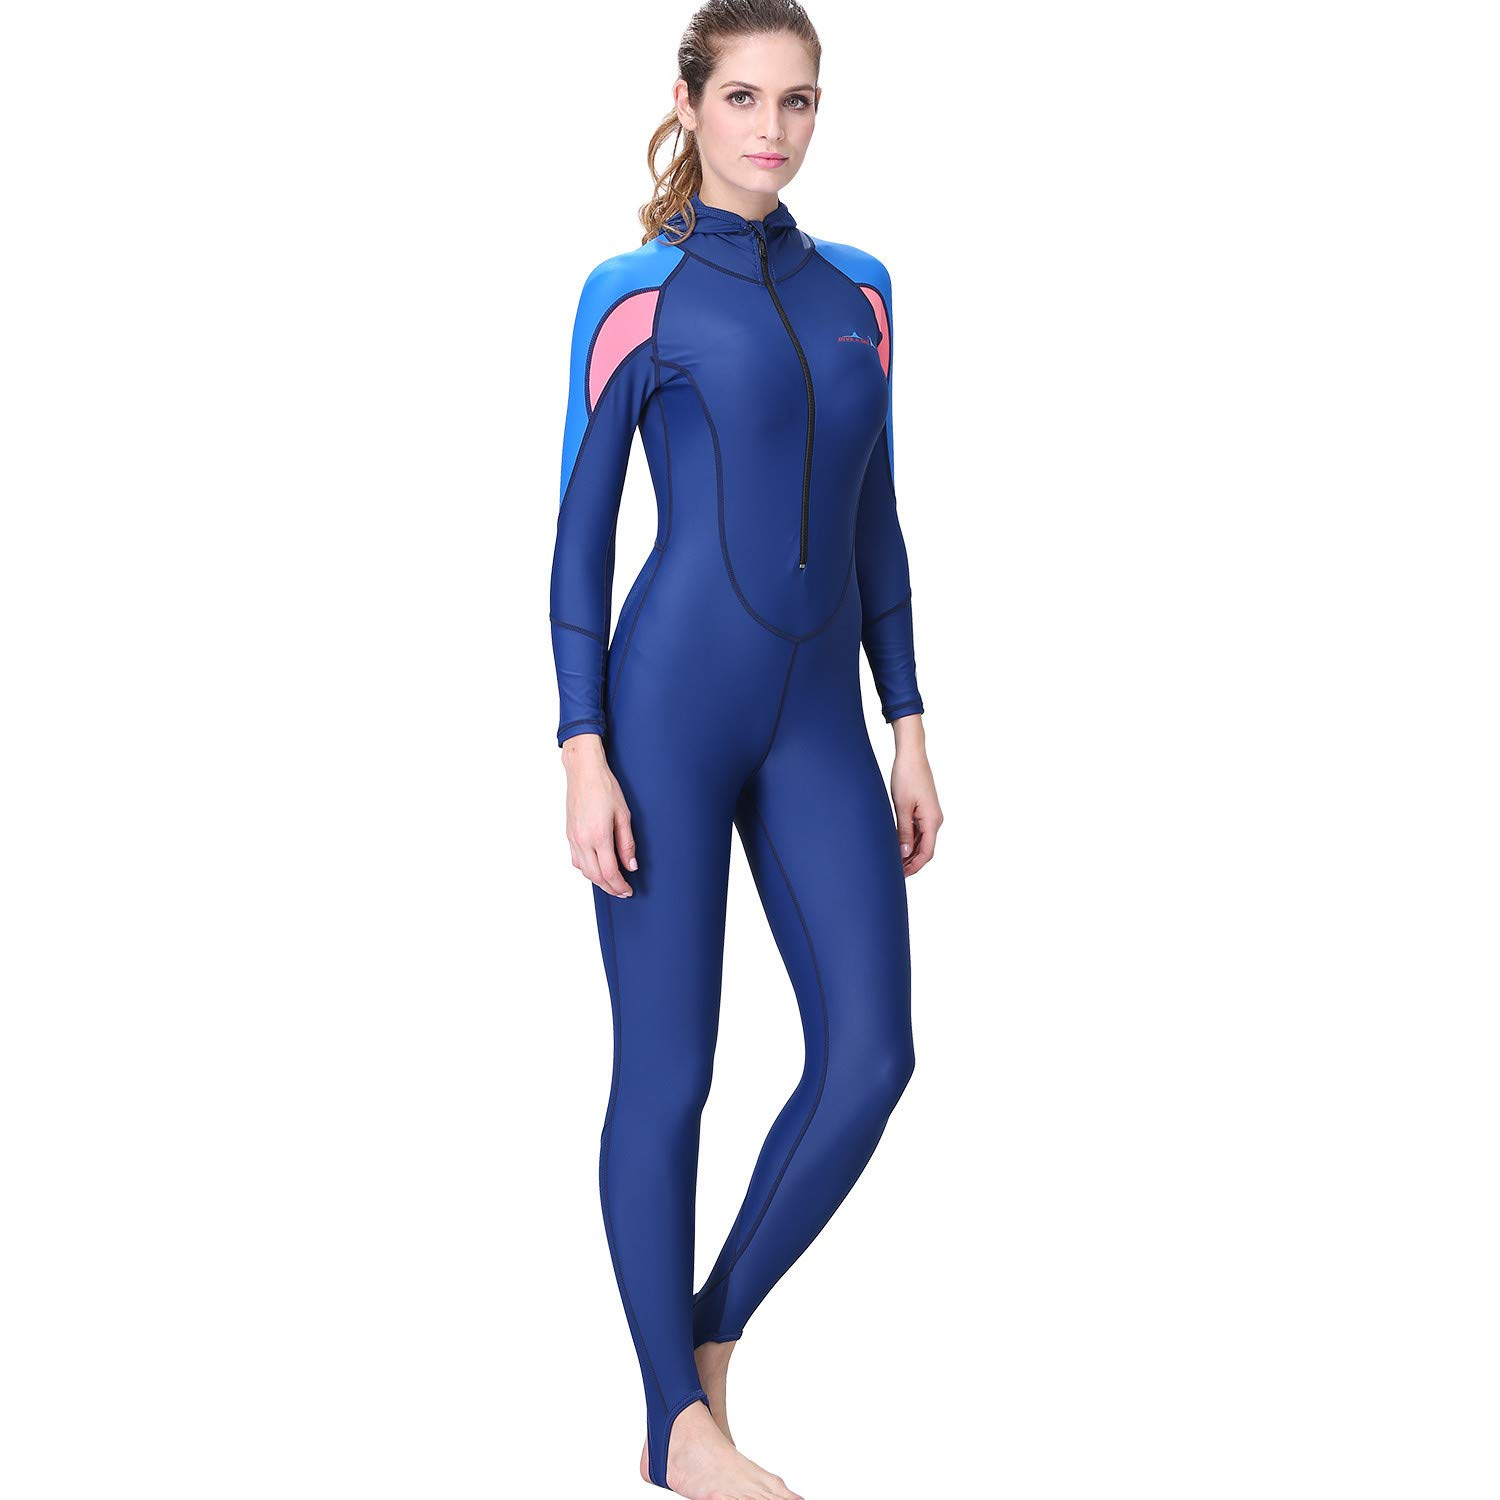 Allywit Women Hooded Diving Suit Long Full Body Scuba Wet Suit Surf Swimming Jumpsuit Blue